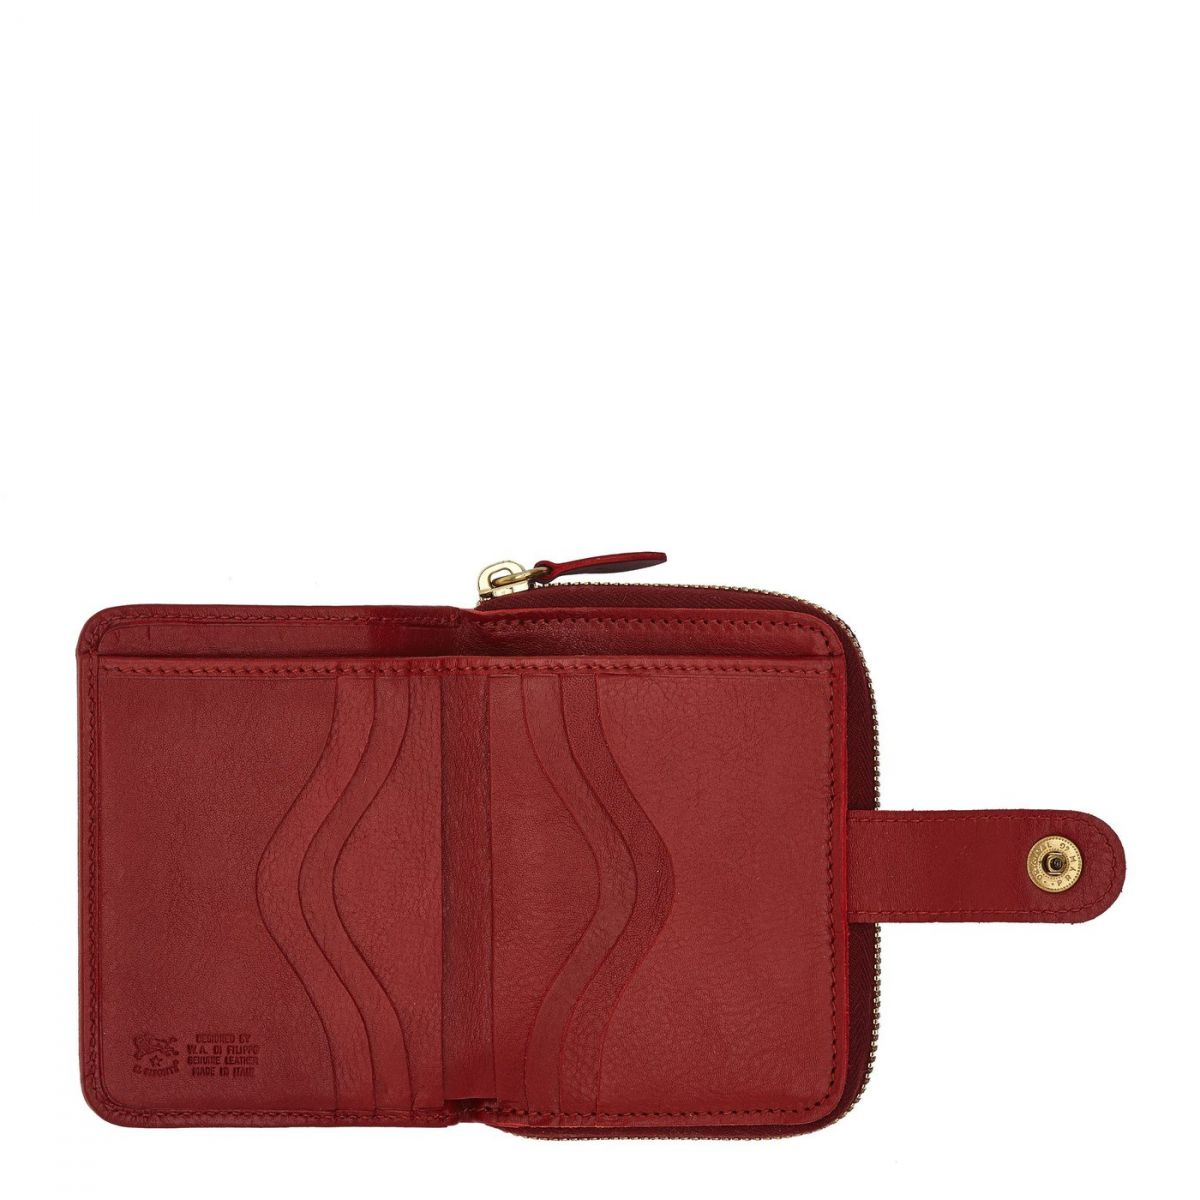 Women's Wallet  in Cowhide Double Leather SMW067 color Red | Details